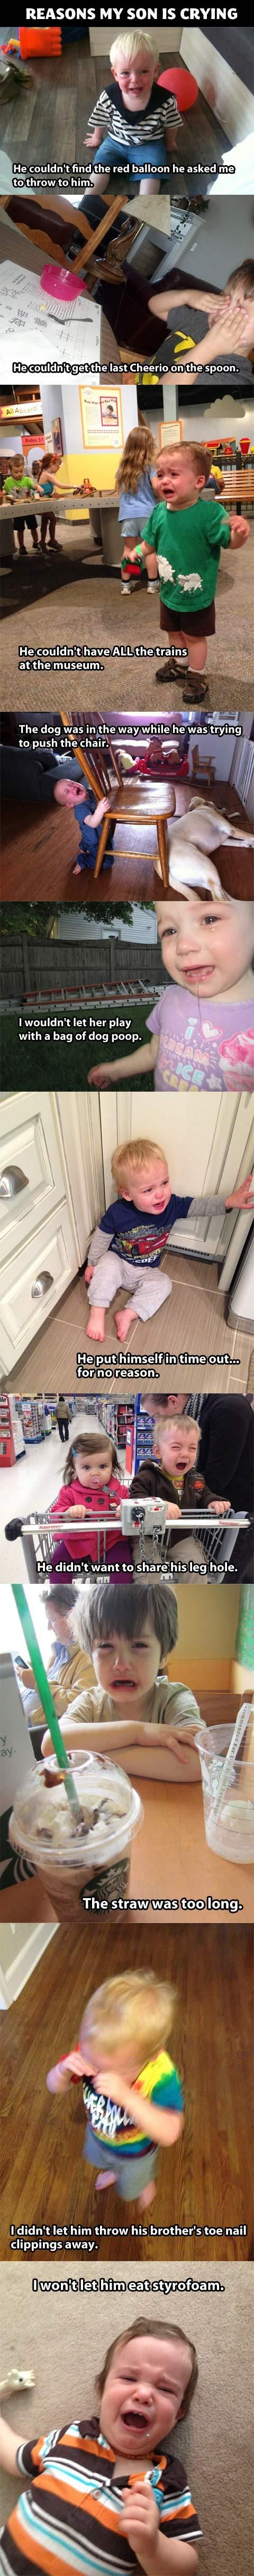 3 year old problems